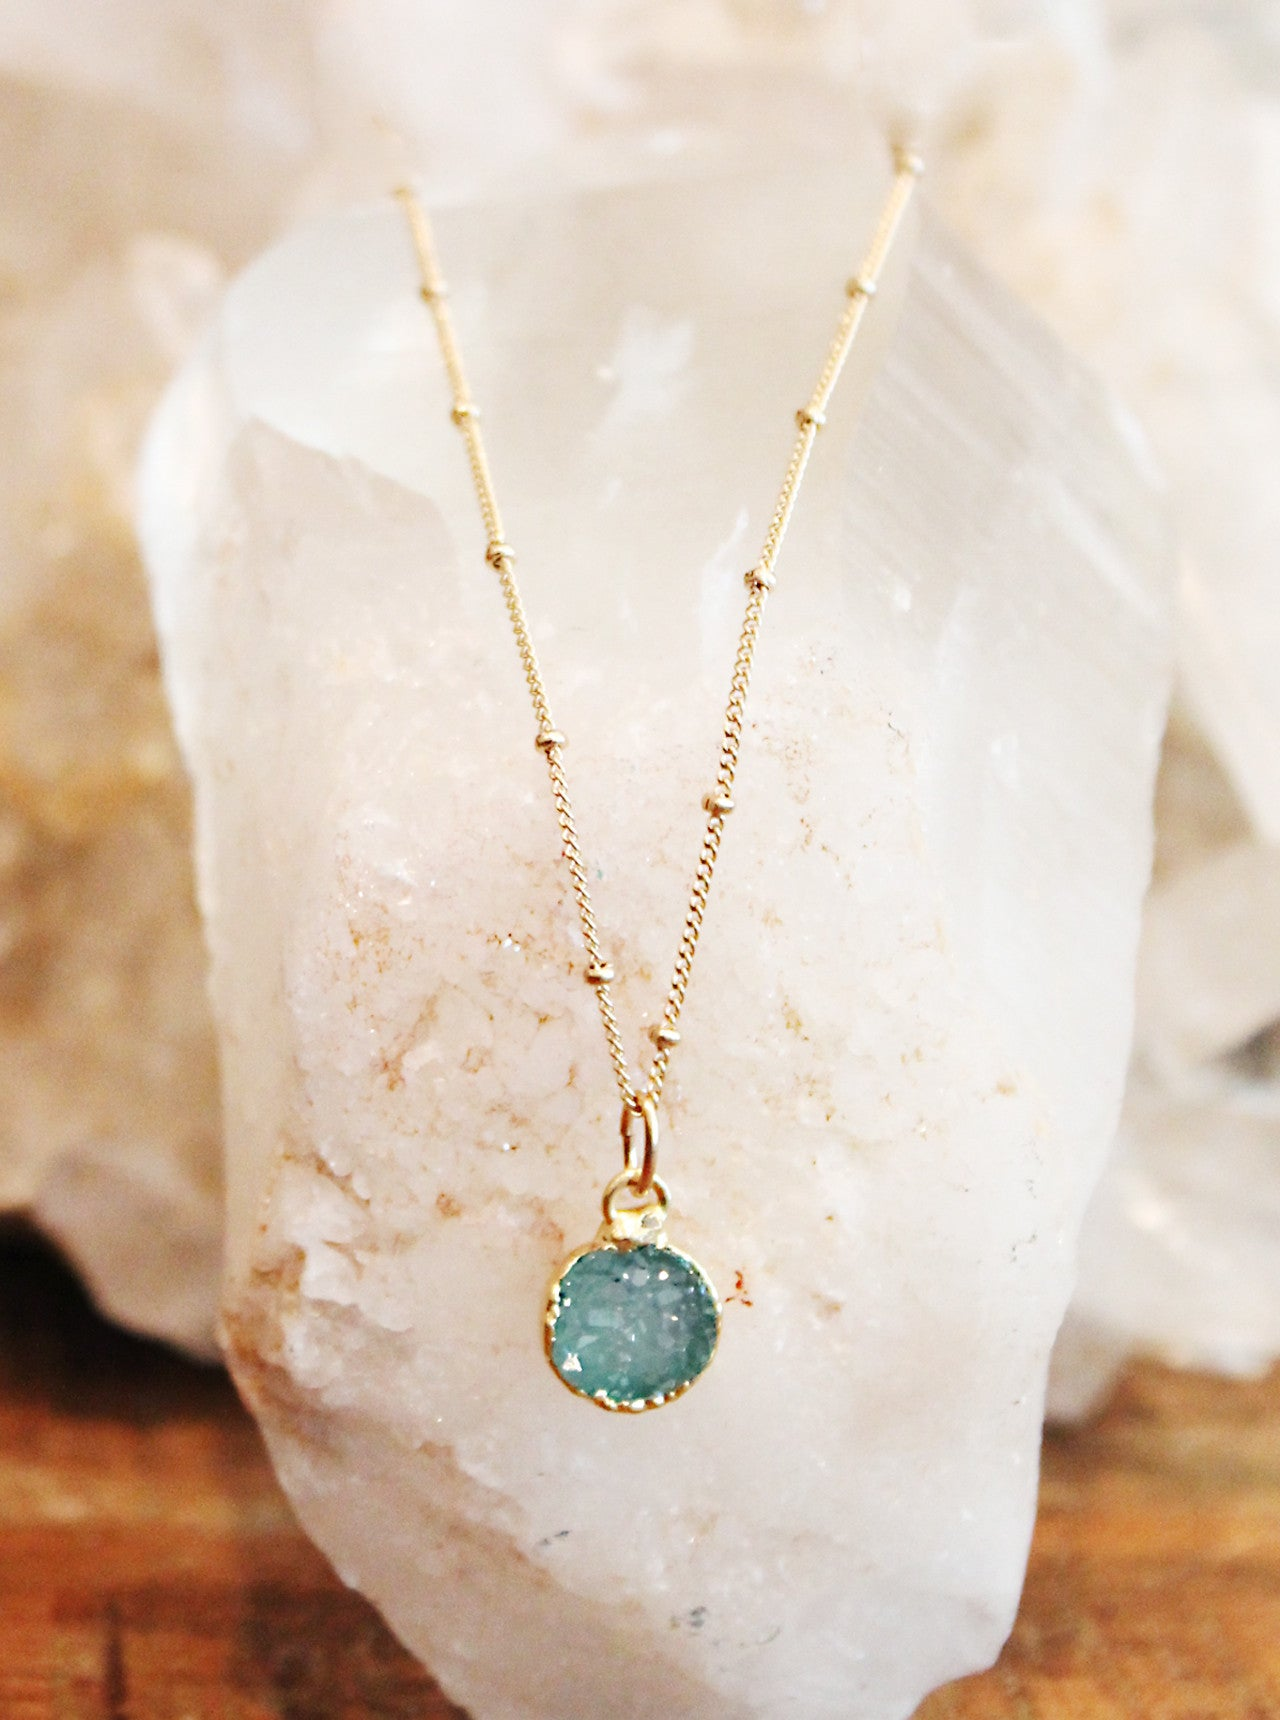 Druzy Agate Green Charm Necklace by Sage - The Sage Lifestyle